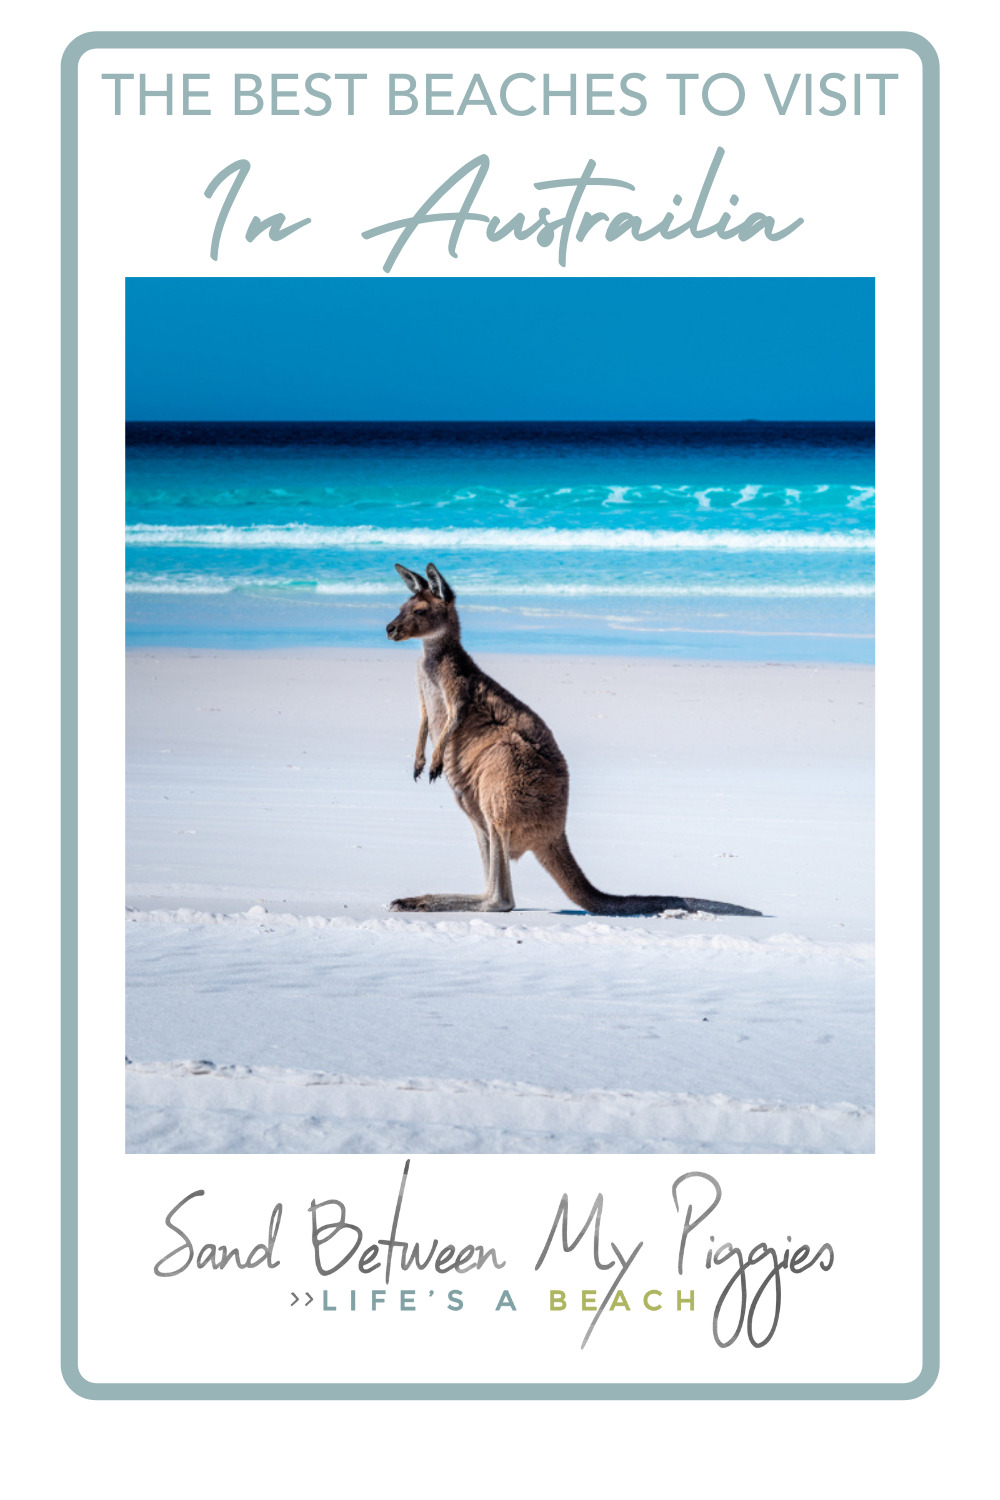 Sandbetweenmypiggies.com is all about the good life. Take a deep breath with travel and beach inspired ideas. Take a relaxing trip to beautiful Australia. Find out all of the things you need to see and do, and what beaches you MUST visit!